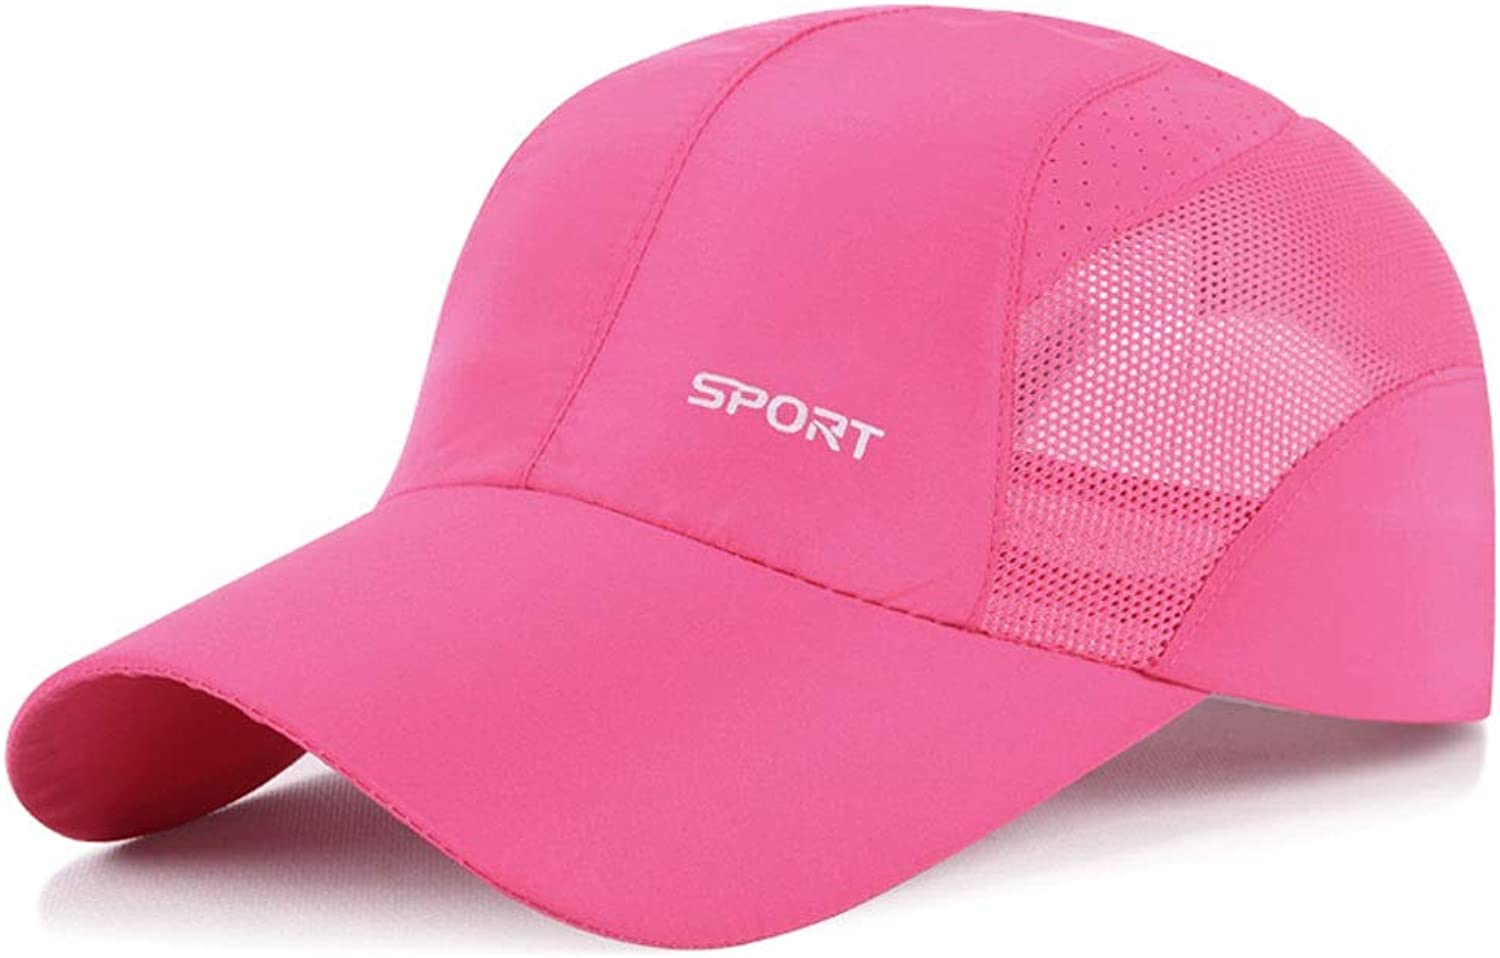 Sun Hat Summer Men and Women Outdoor Leisure Sports Baseball Cap QuickDrying Breathable Mesh Cap Sunscreen Visor Cap 5459cm UPF 40+ ZHAOSHUNLI (color   Pink)